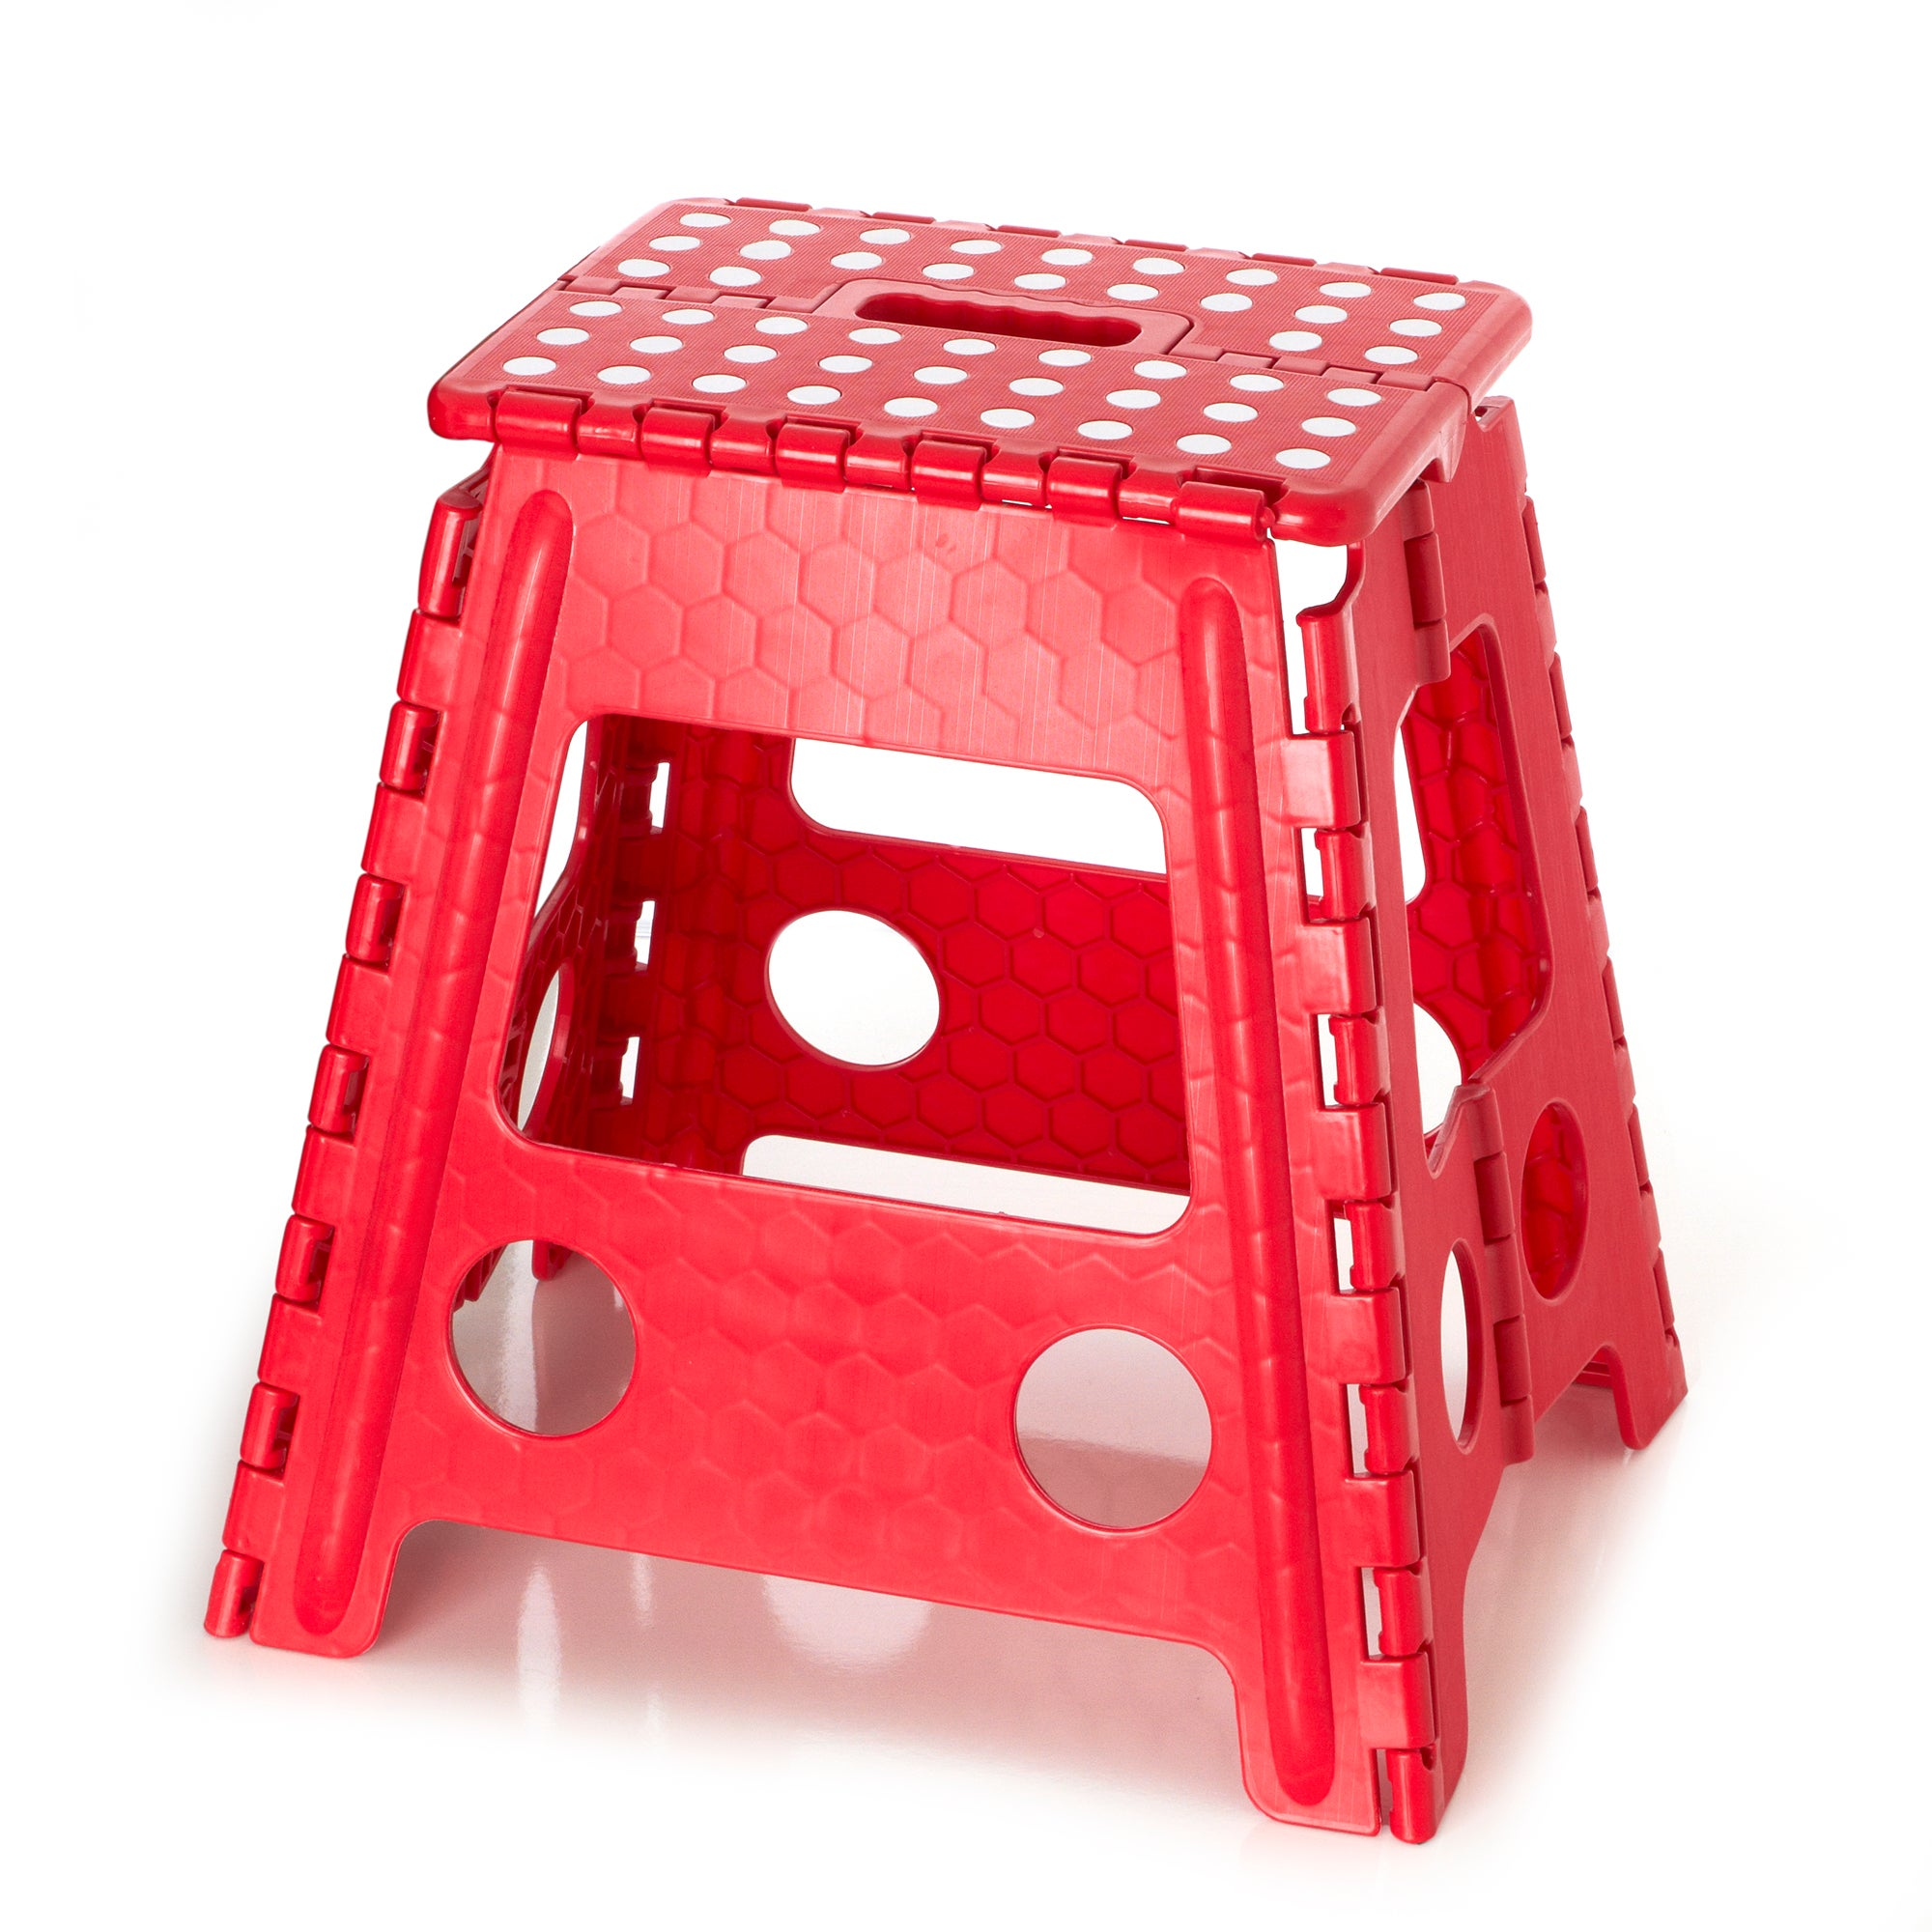 Simply Foldable Large Step Stool